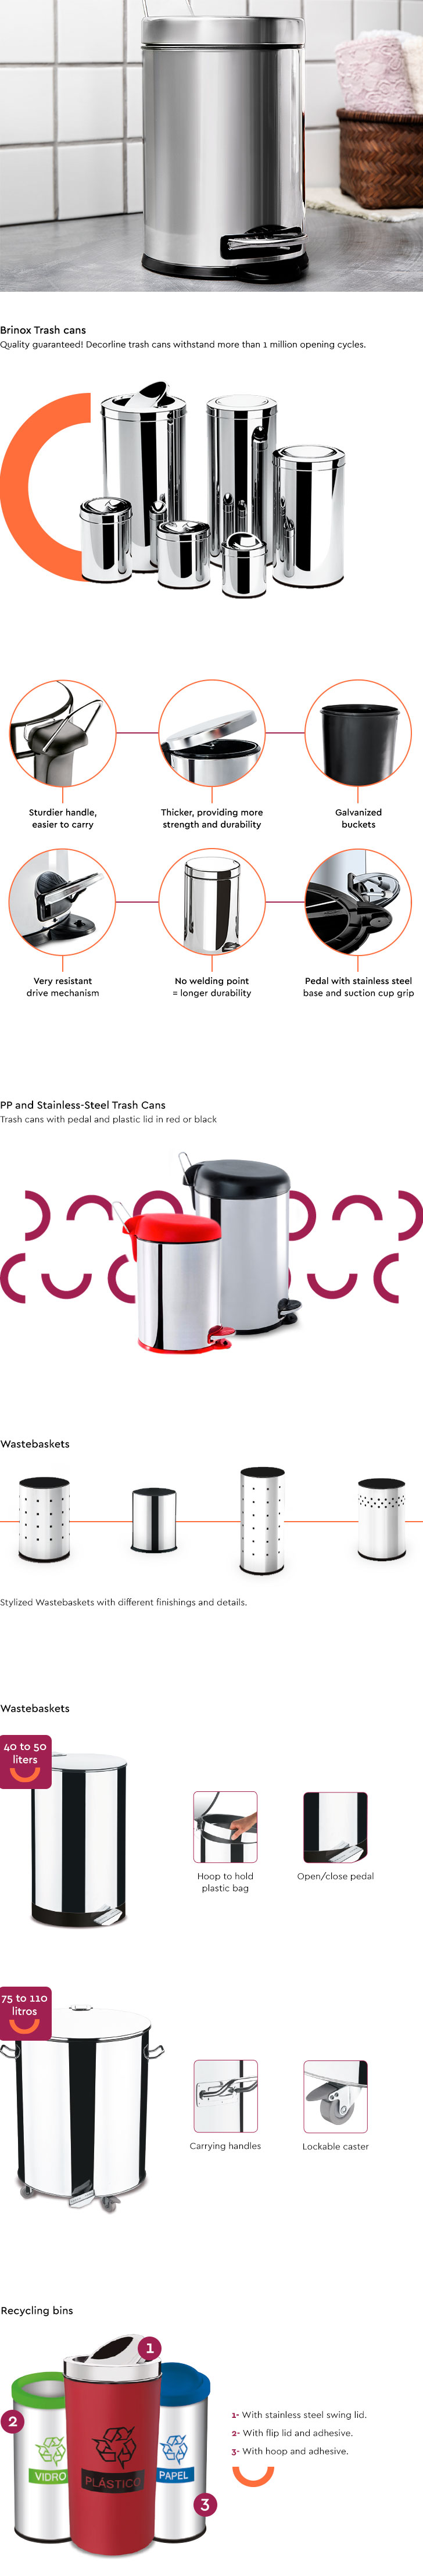 Brinox Trash cans Quality guaranteed! Decorline trash cans withstand more than 1 million opening cycles. • Sturdier handle, easier to carry • Thicker, providing more strength and durability • Galvanized buckets • Very resistant drive mechanism • No welding point = longer durability • Pedal with stainless steel base and suction cup grip  PP and Stainless-Steel Trash Cans Trash cans with pedal and plastic lid in red or black  Wastebaskets • 40 to 50 liters • Hoop to hold plastic bag • Open/close pedal  • 75 to 110 liters • Carrying handles • Lockable caster  Recycling bins • With stainless steel swing lid • With flip lid and adhesive • With hoop and adhesive